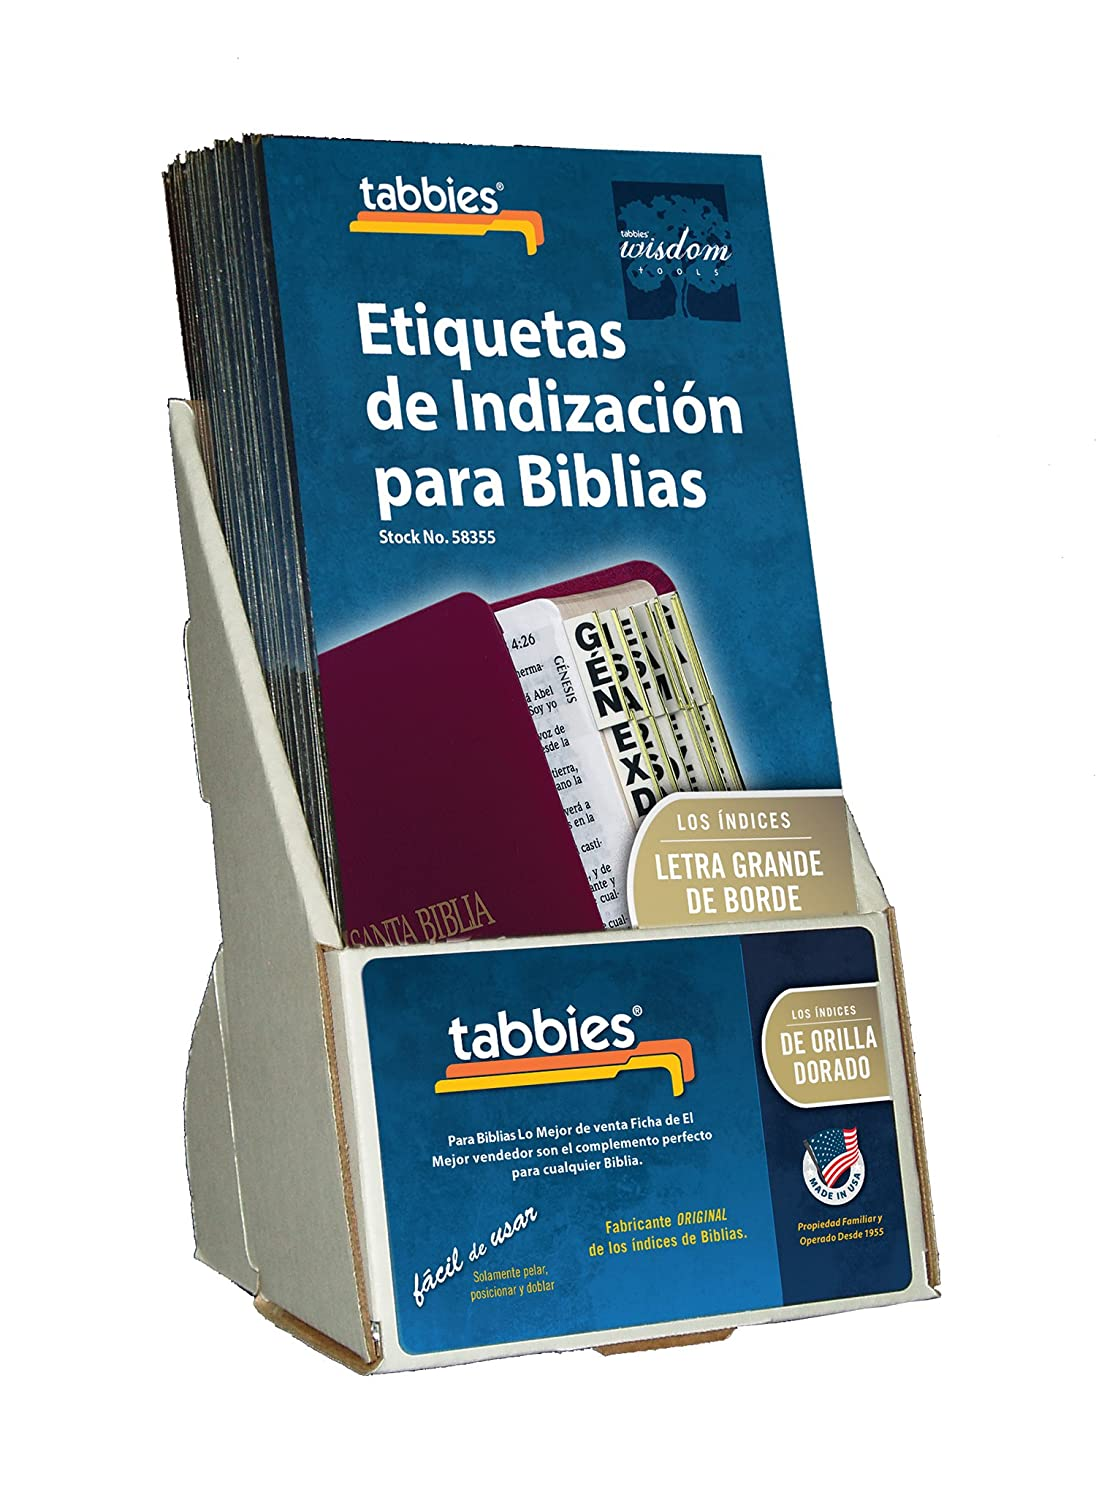 Amazon.com : Tabbies 20 Pack with Display Large Print Gold-Edged Spanish Bible Indexing Tabs, Old & New Testaments, 84 Gold-Edged Tabs (58355) : Office ...